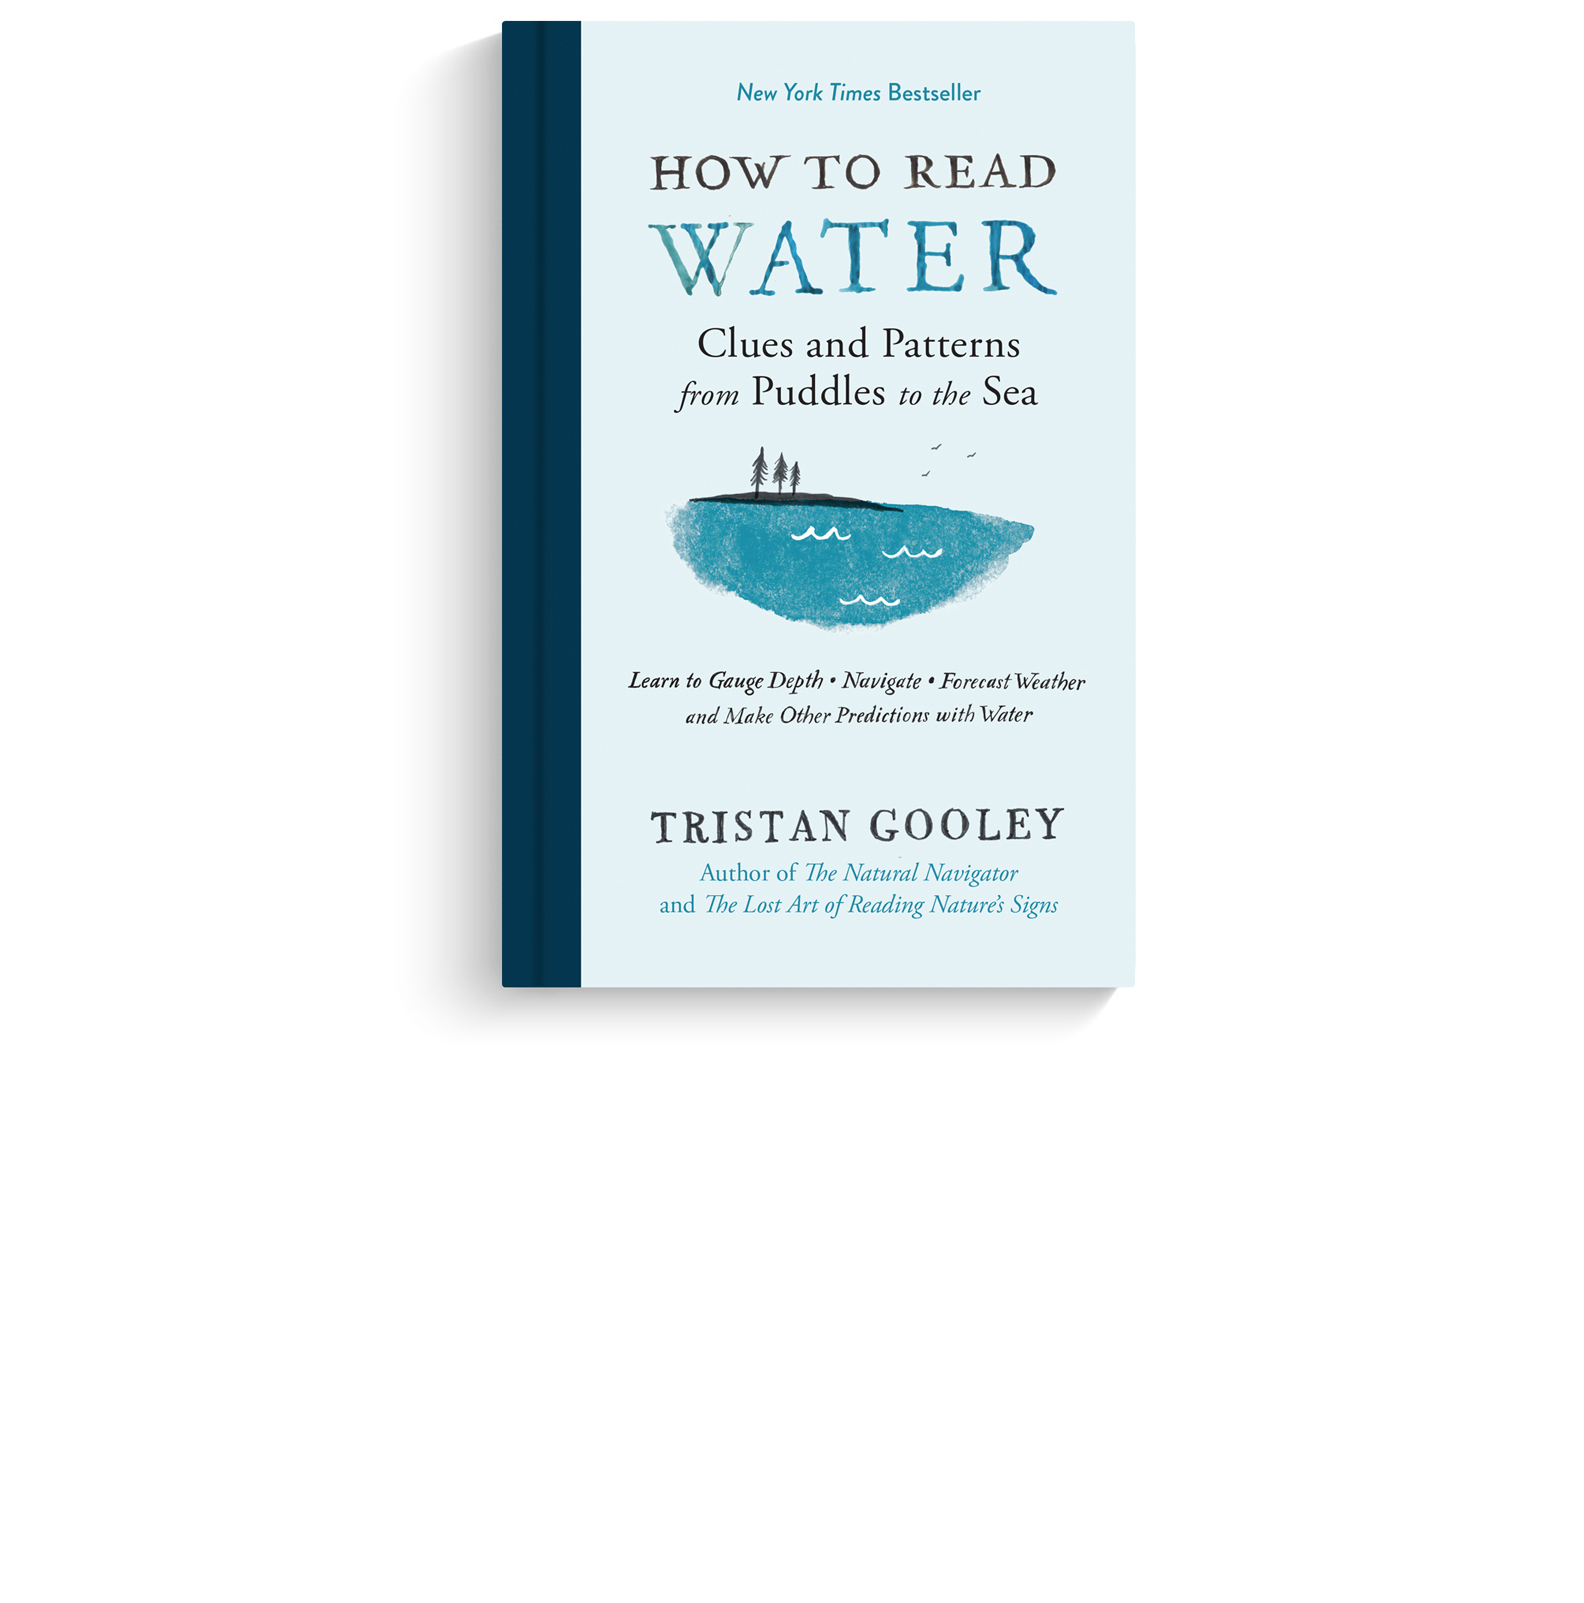 howtoreadwater.jpg